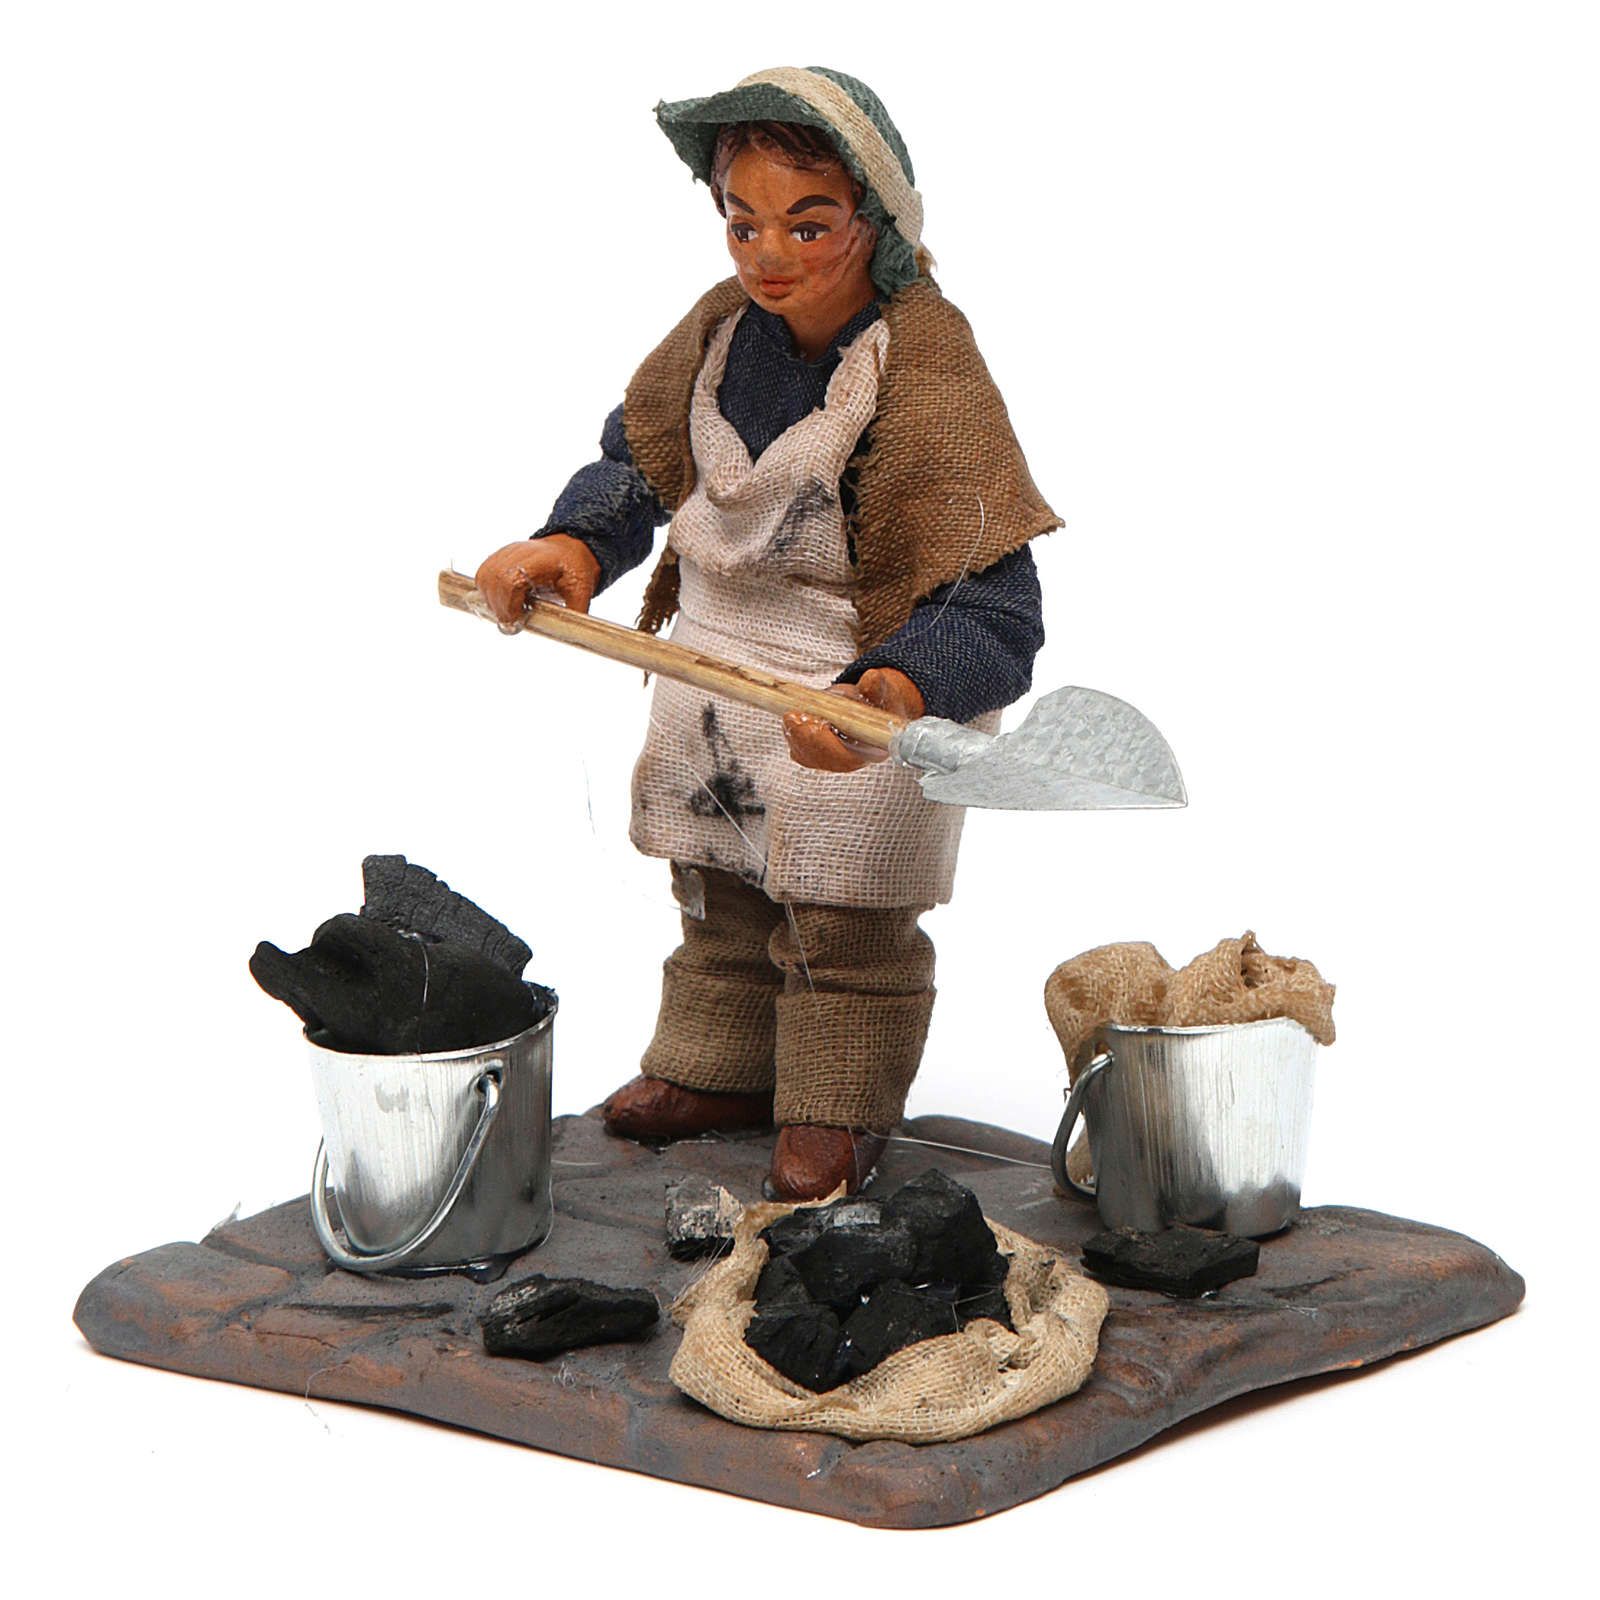 Neapolitan Nativity figurine, charcoal burner with base, 10 cm 4